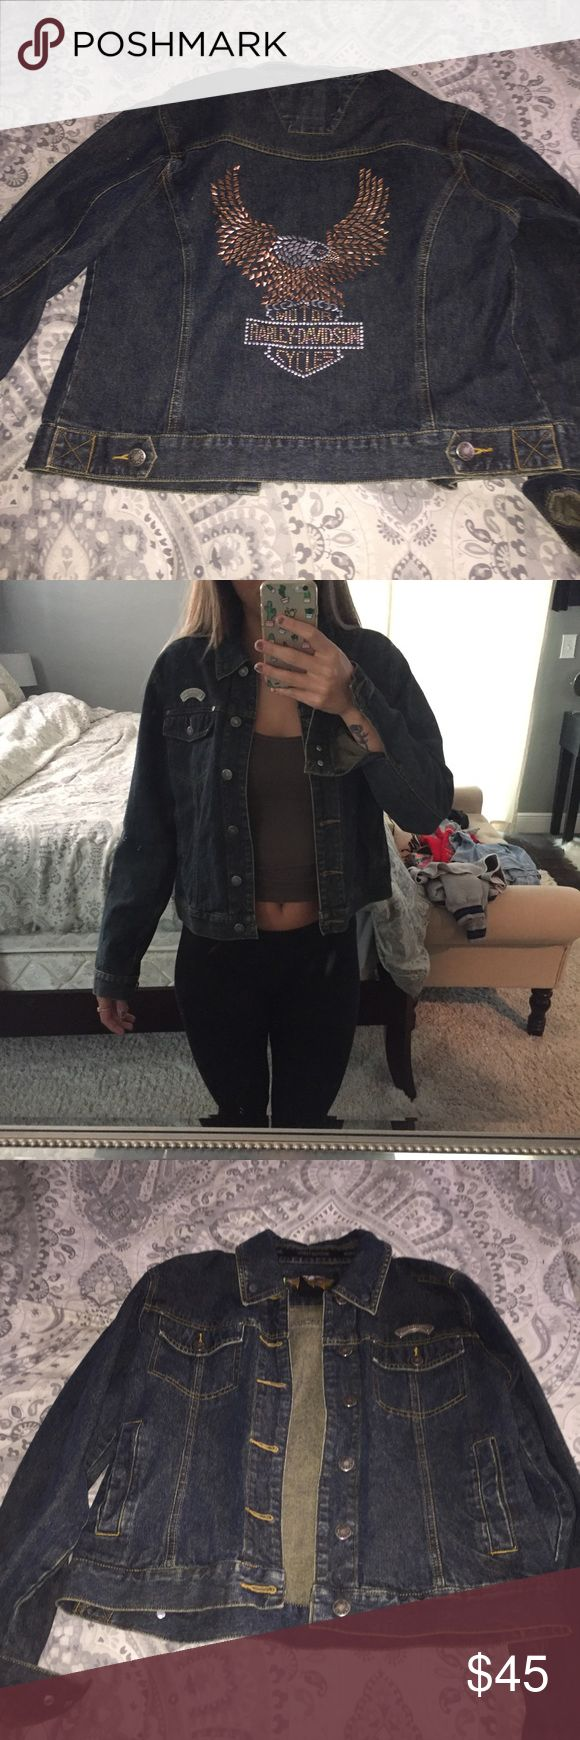 Harley Davidson jean jacket Harley Davidson jean jacket in perfect condition!! So cute and goes with anything! Harley-Davidson Jackets & Coats Jean Jackets